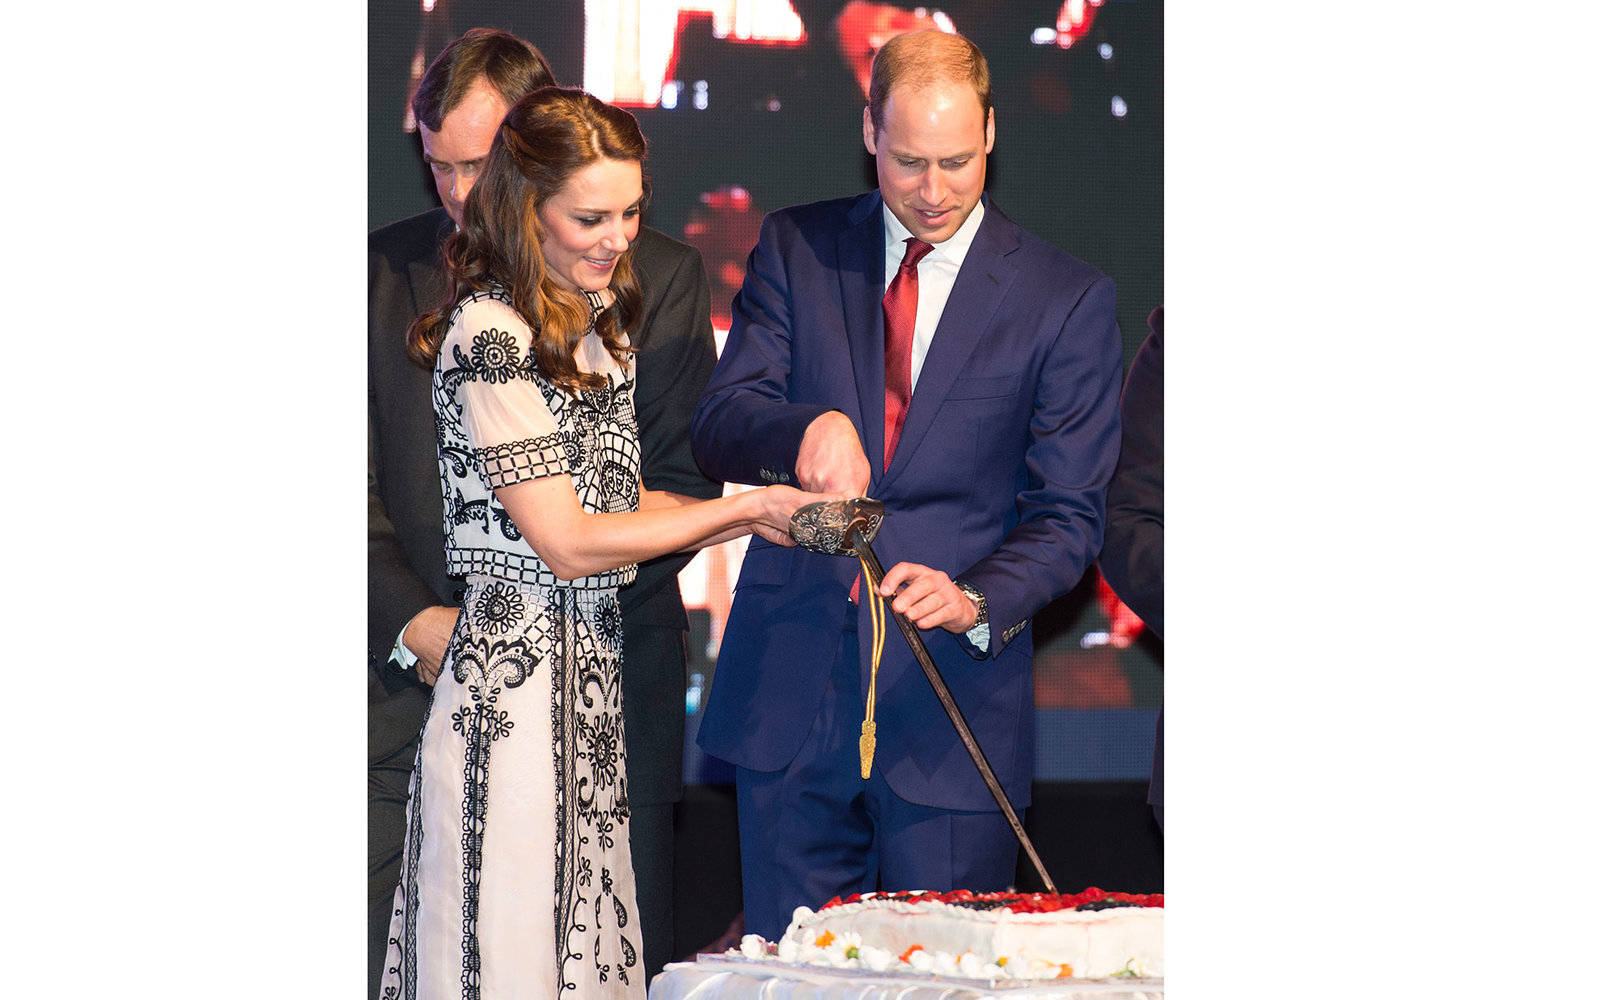 NEW DELHI, INDIA - APRIL 11:  Prince William, Duke of Cambridge and Catherine, Duchess of Cambridge cut a birthday cake for Queen Elizabeth II at a Garden party celebrating the Queen's 90th birthday on April 11, 2016 in New Delhi, India.  (Photo by Mark C